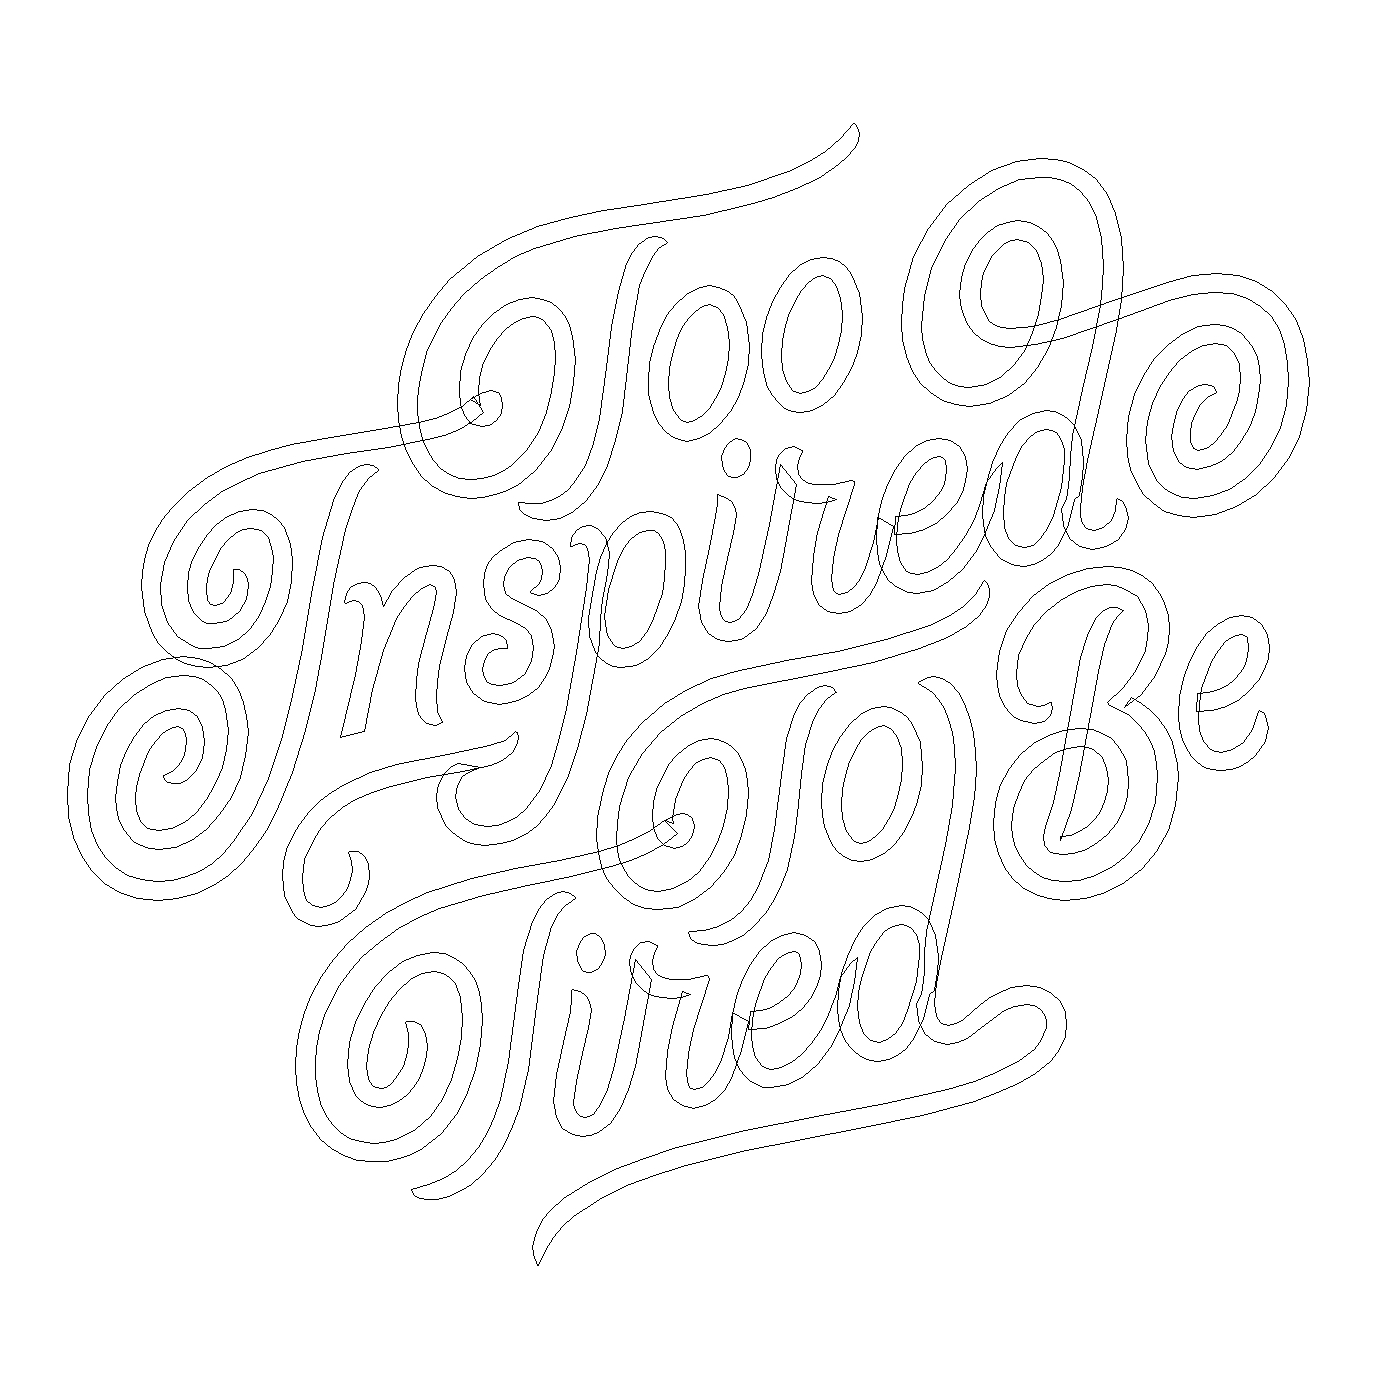 Too Inspired to be Tired, Custom Lettering by Dan Forster